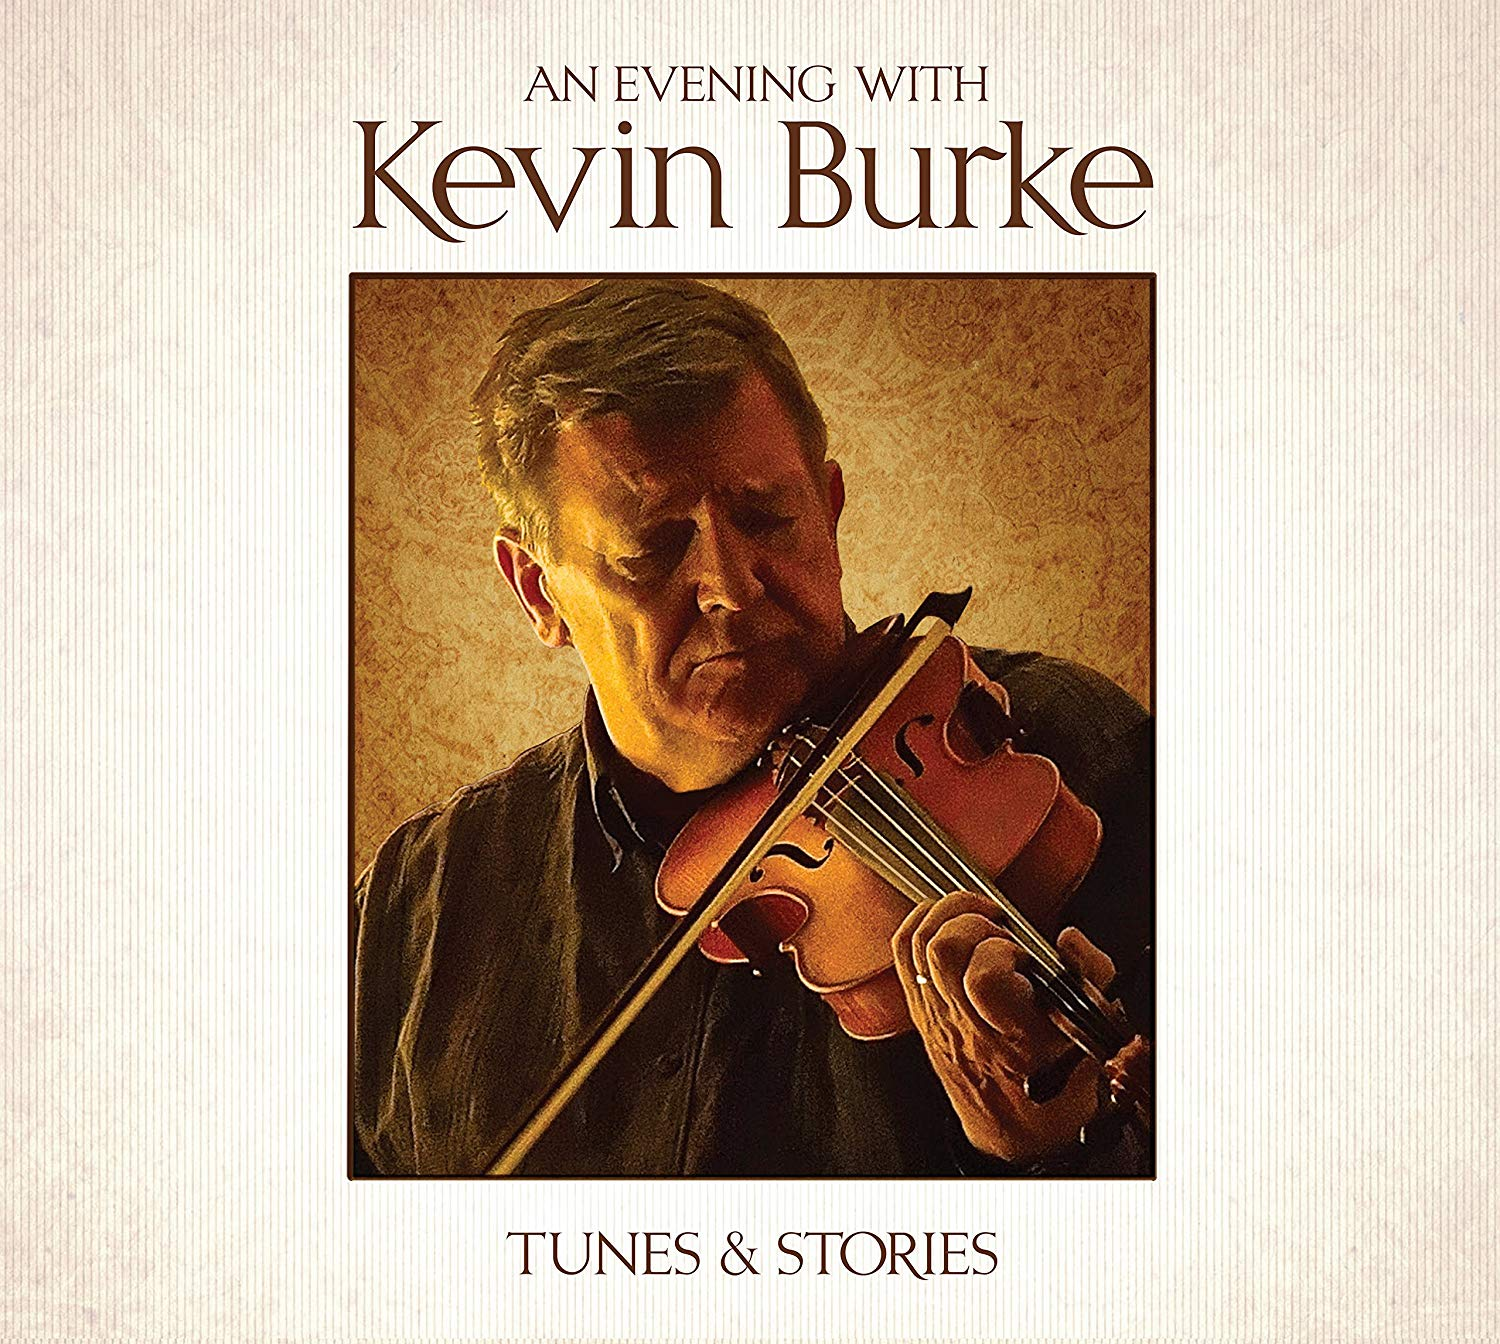 Kevin burke cover